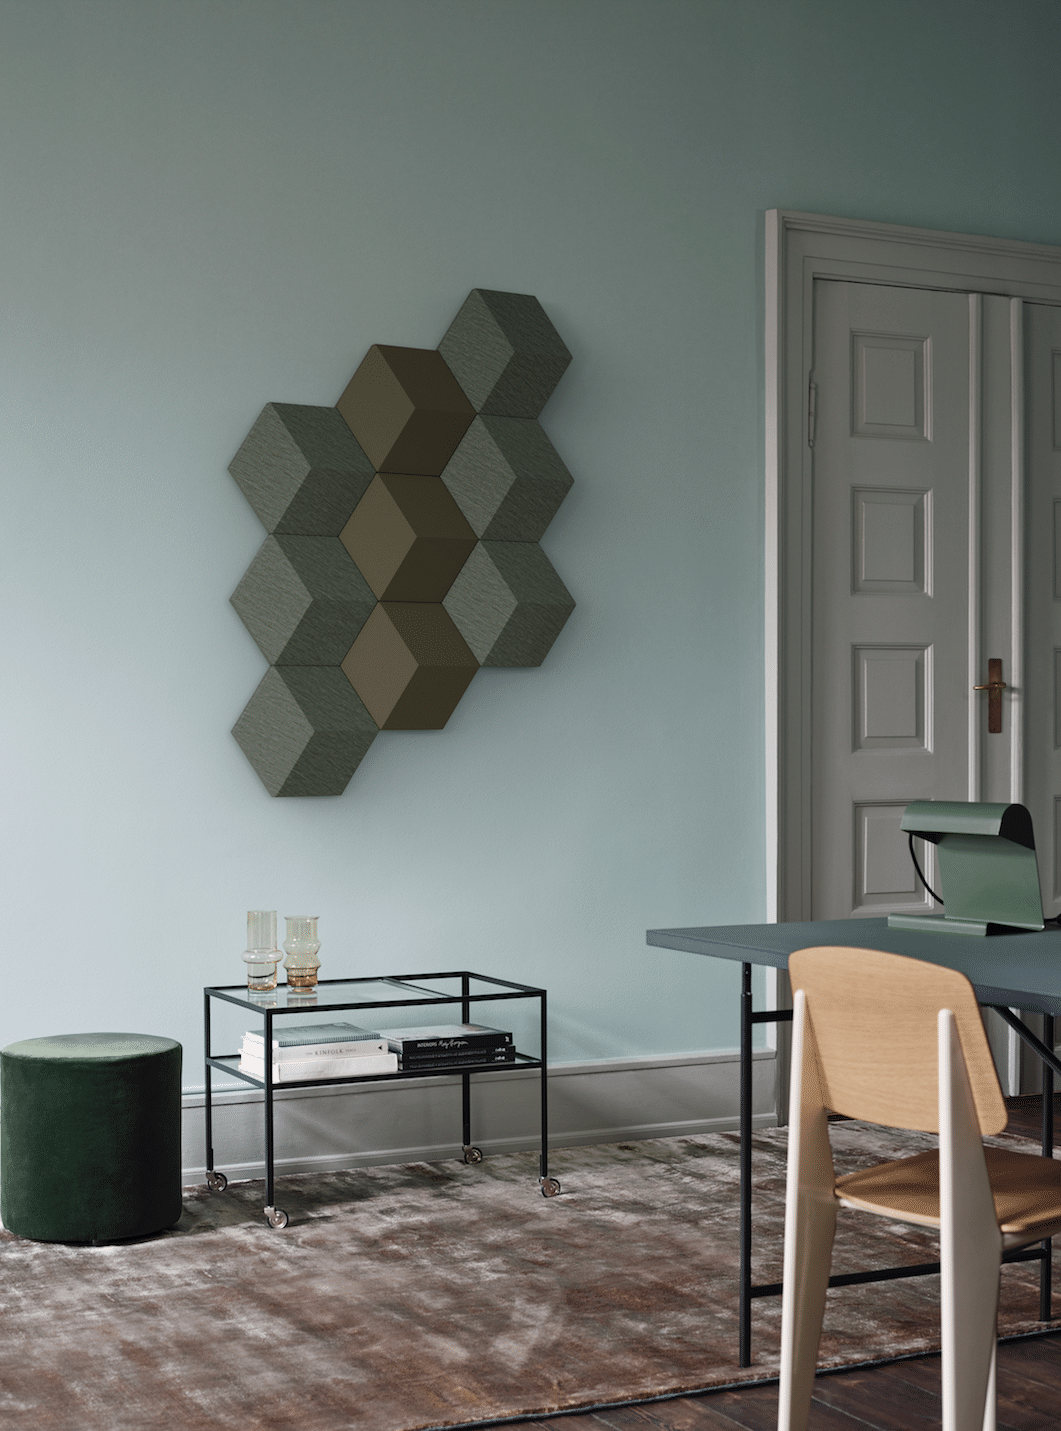 BeoSound makes some Shapes: Off the Wall Music, smiles at tiles ...